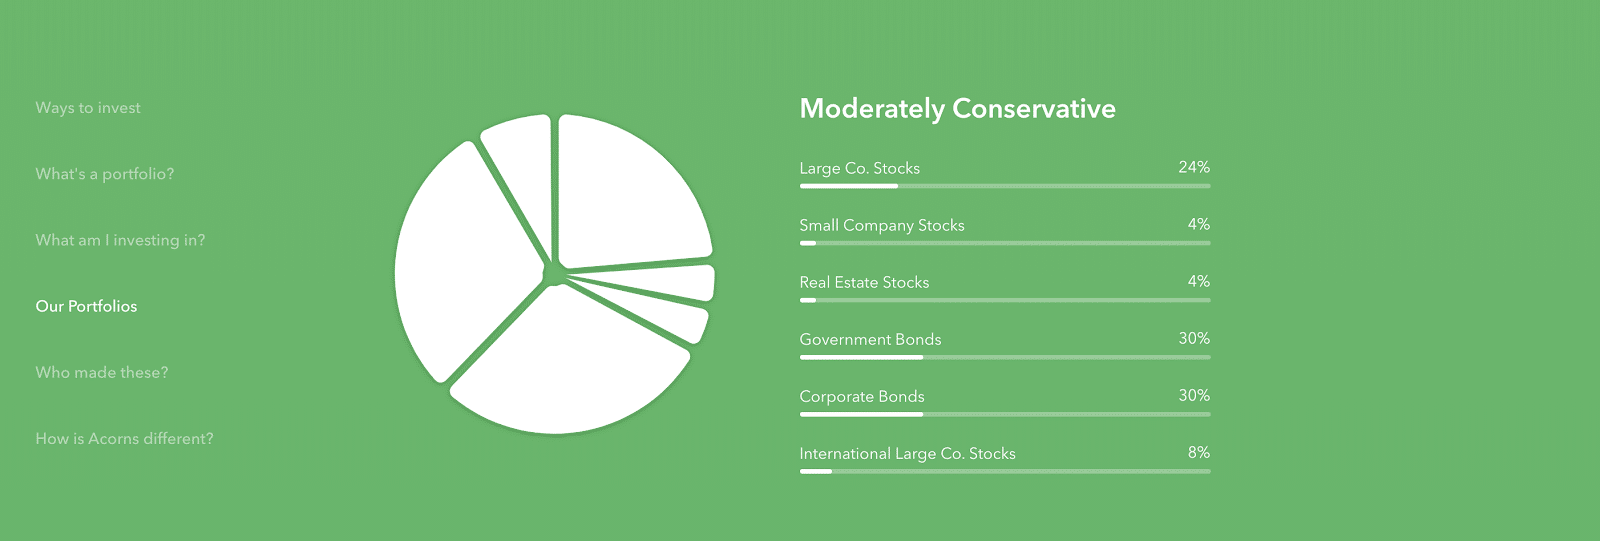 acorns conservative allocation portfolio